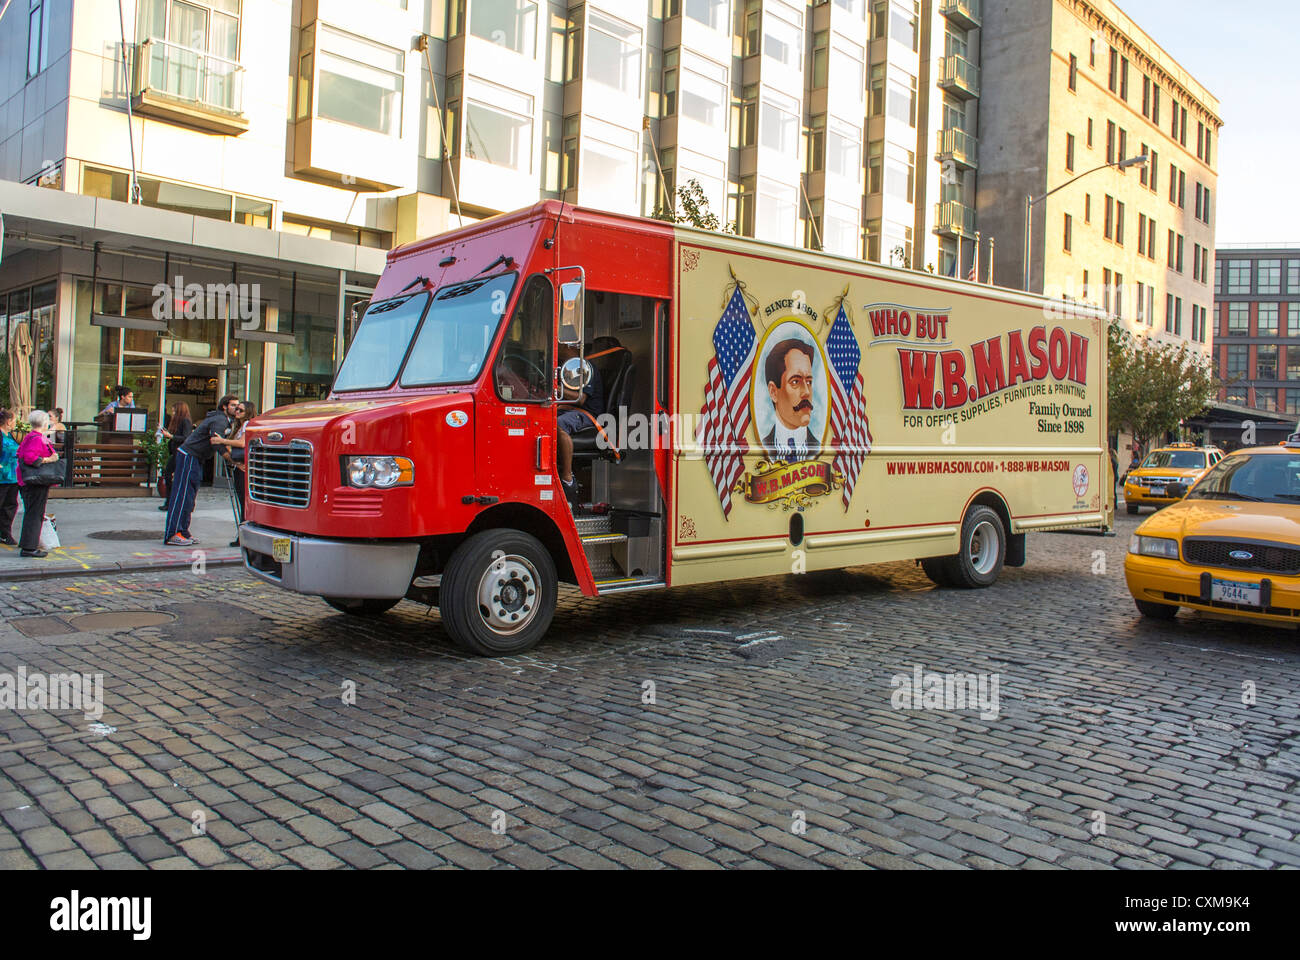 W B Mason Delivery Truck High Resolution Stock Photography and